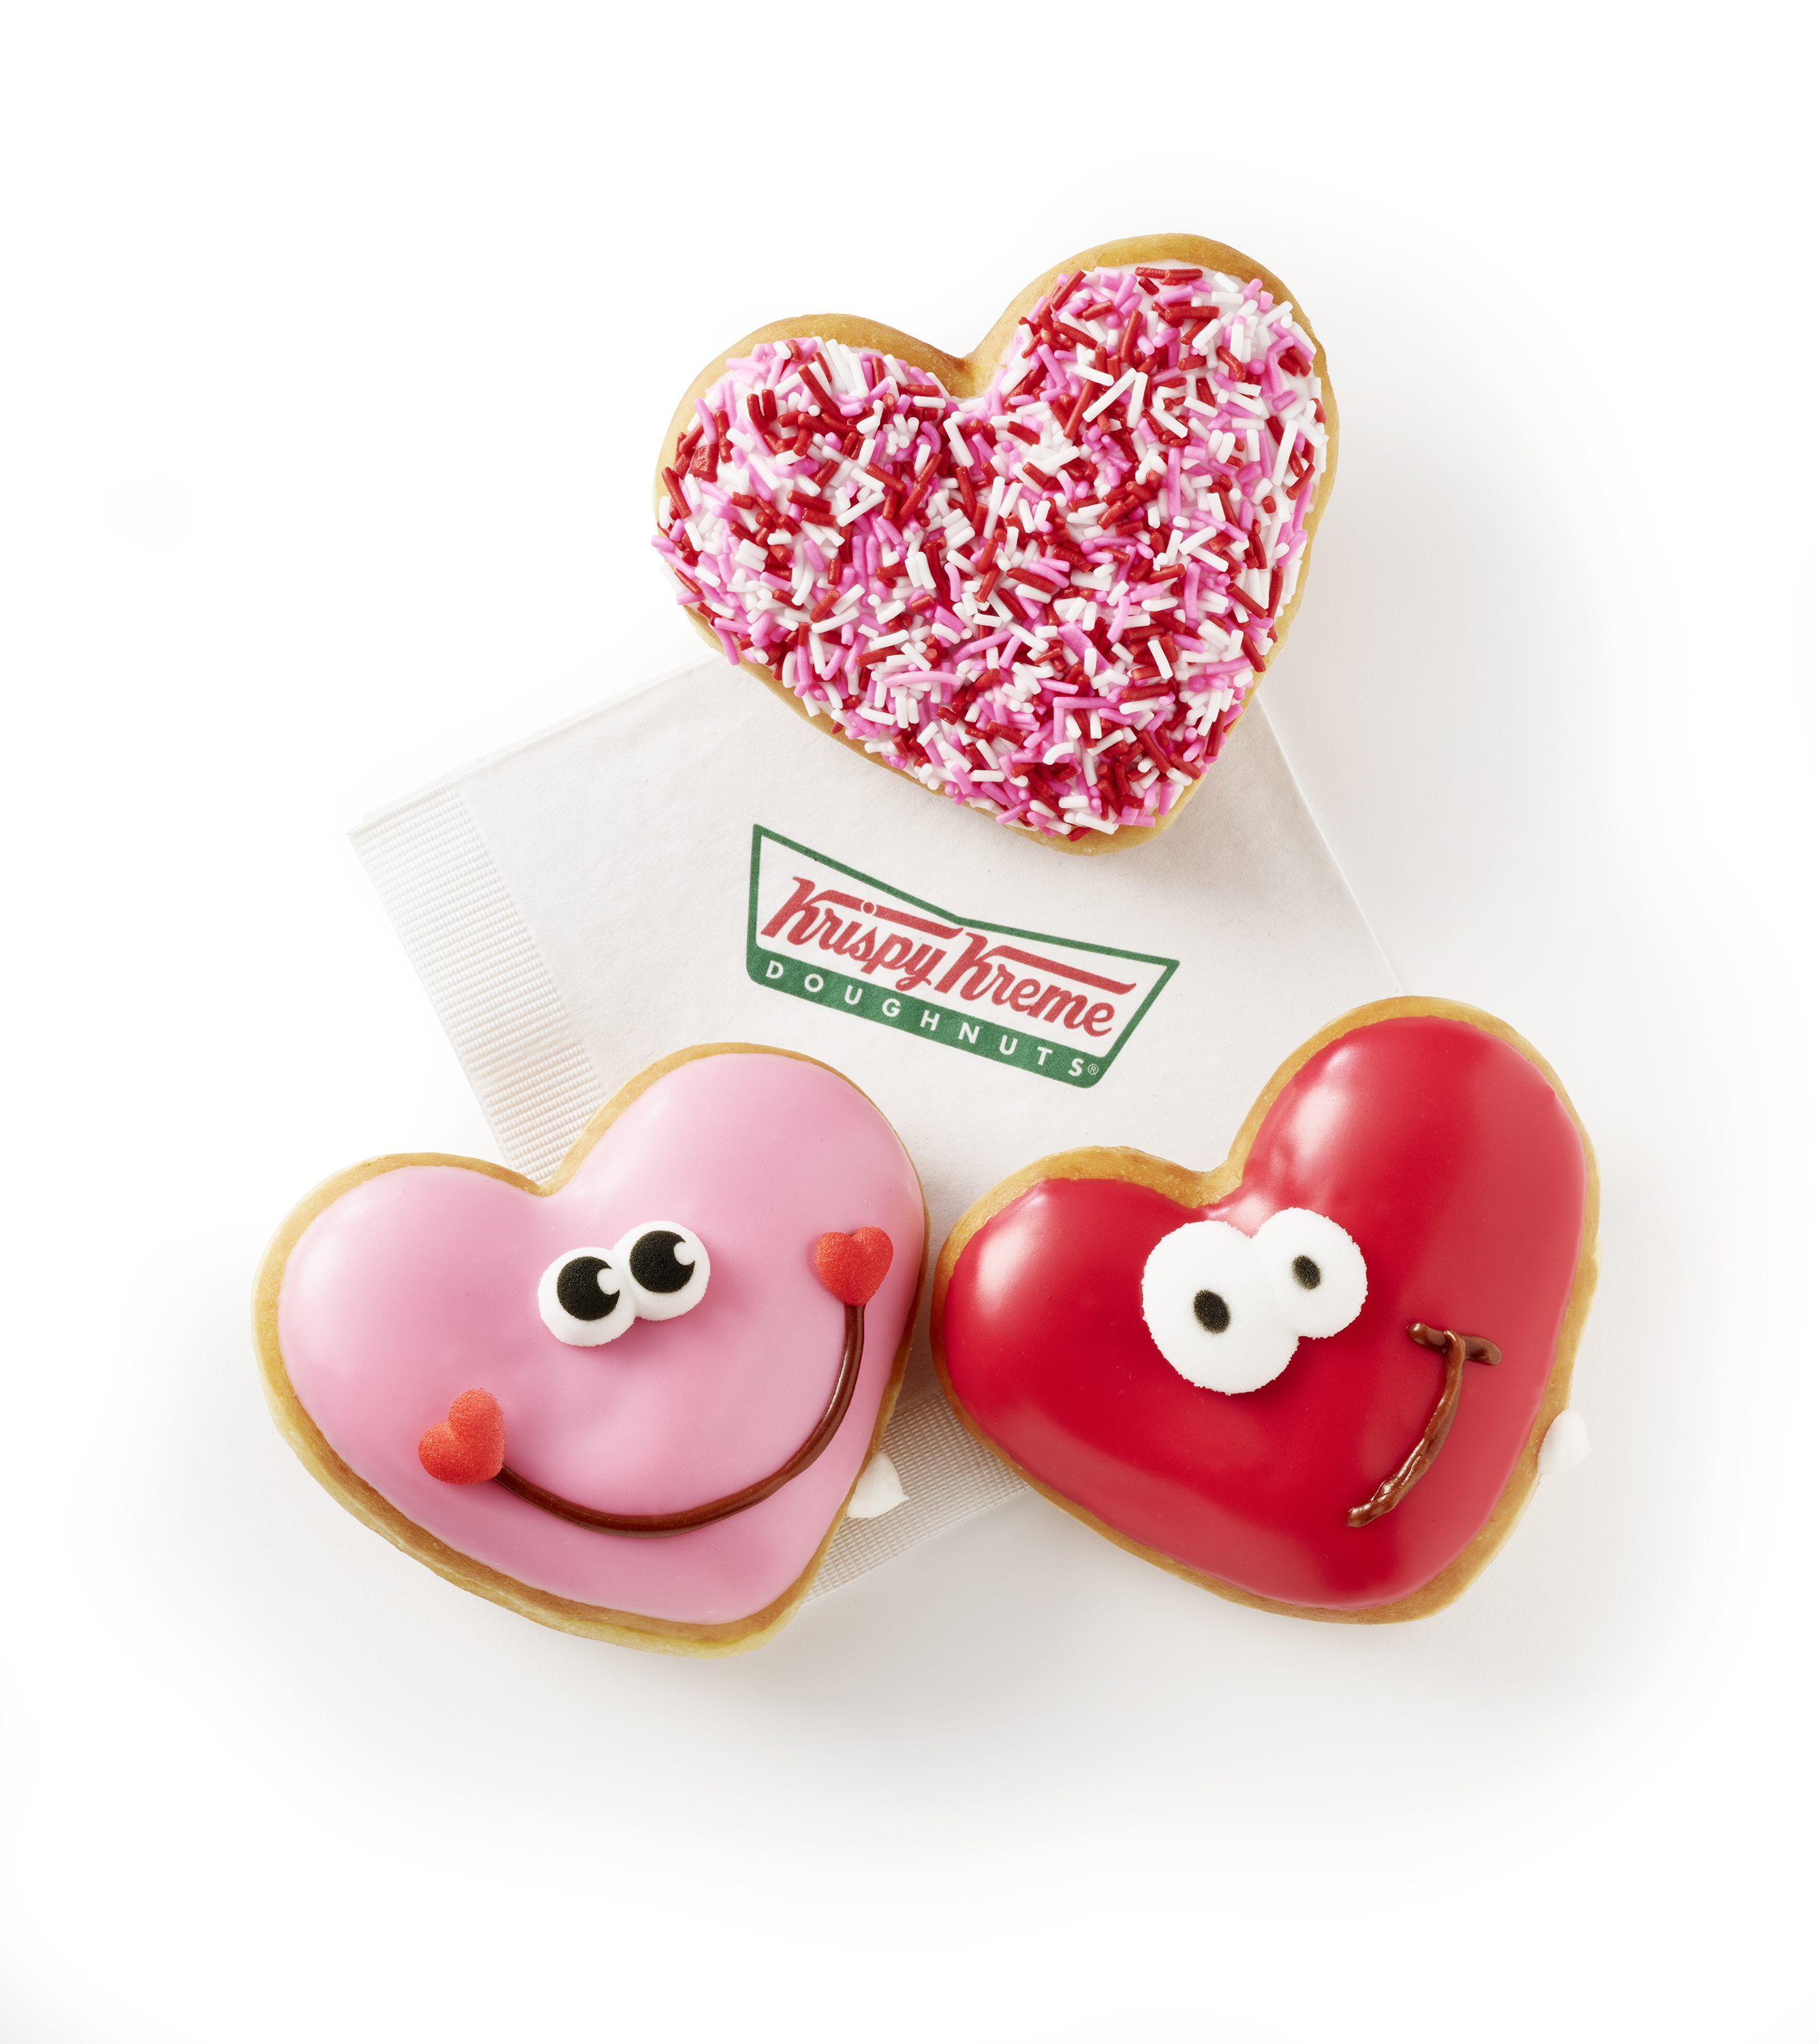 happy hearts: krispy kreme doughnuts showcases heart-shaped